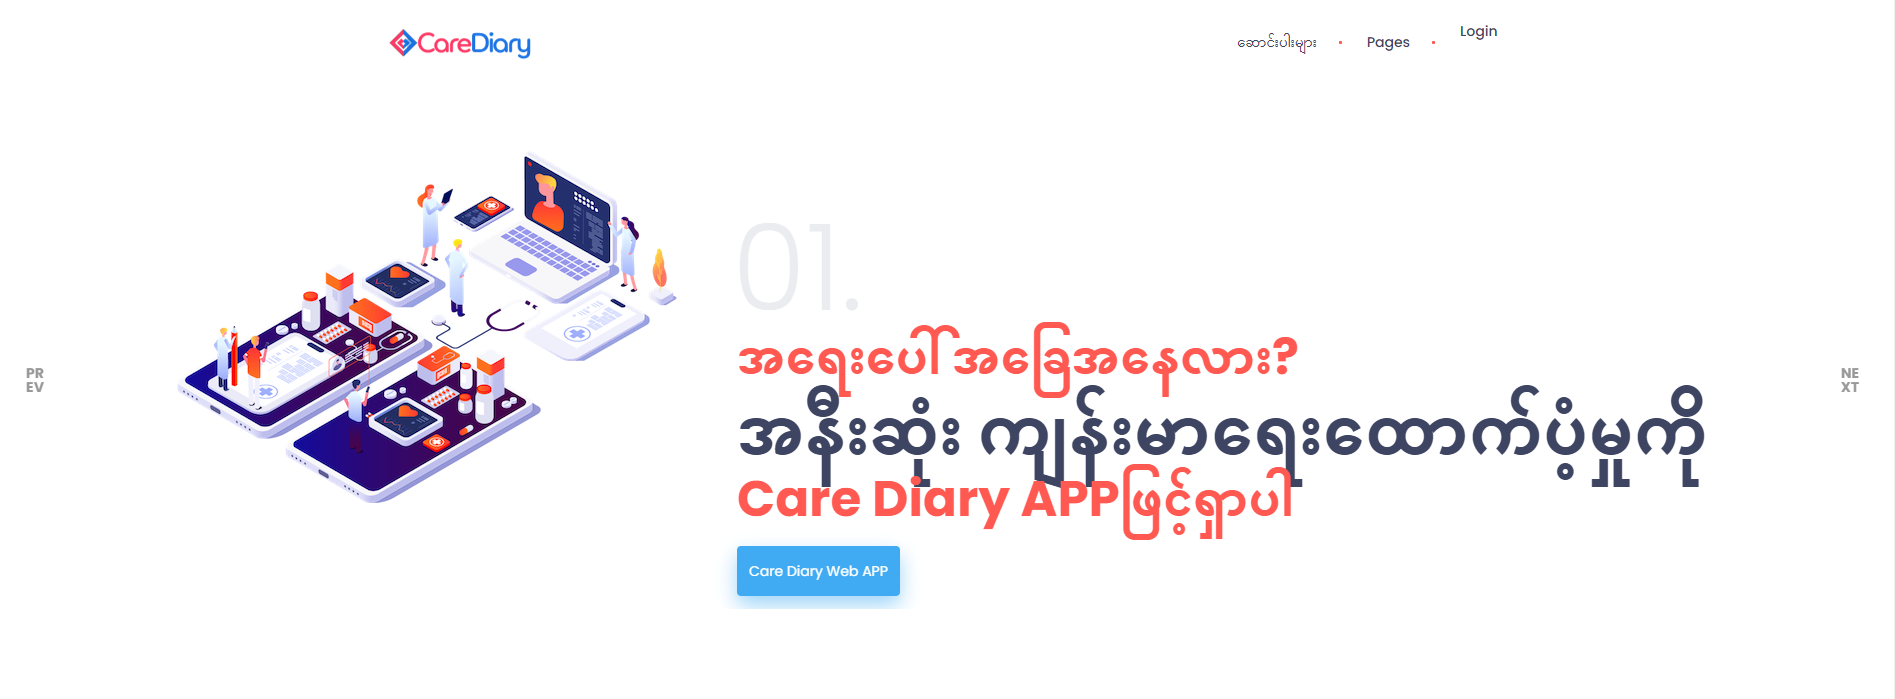 ourcarediary